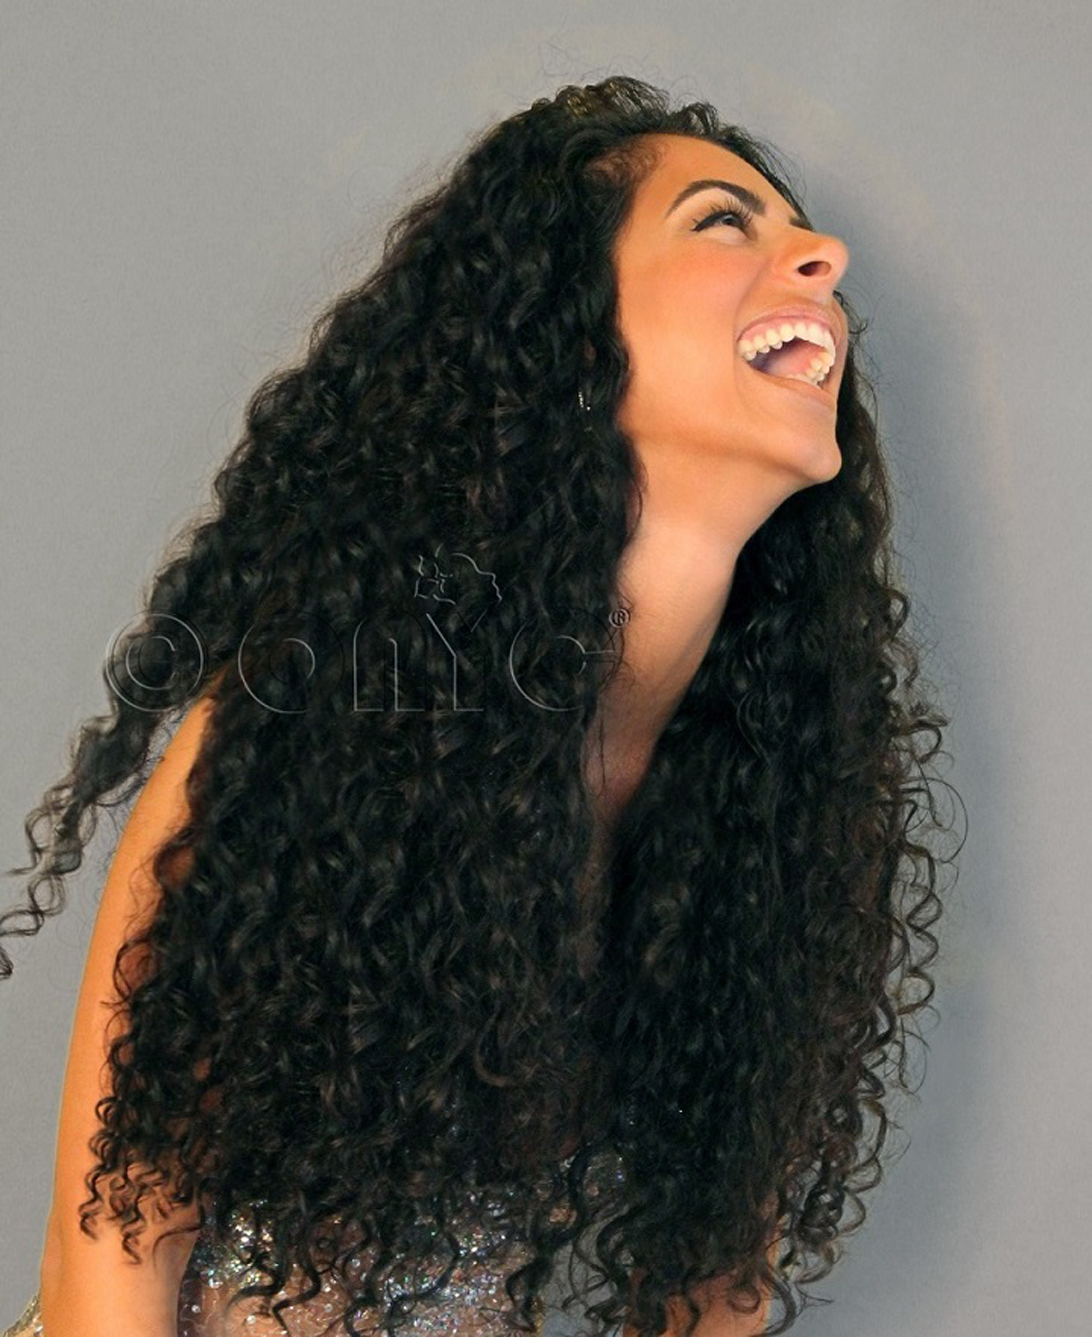 Types of Deep Curly Hair Weave - ONYC Hairstyling Guide - Curly Addiction 3B Machine Weft